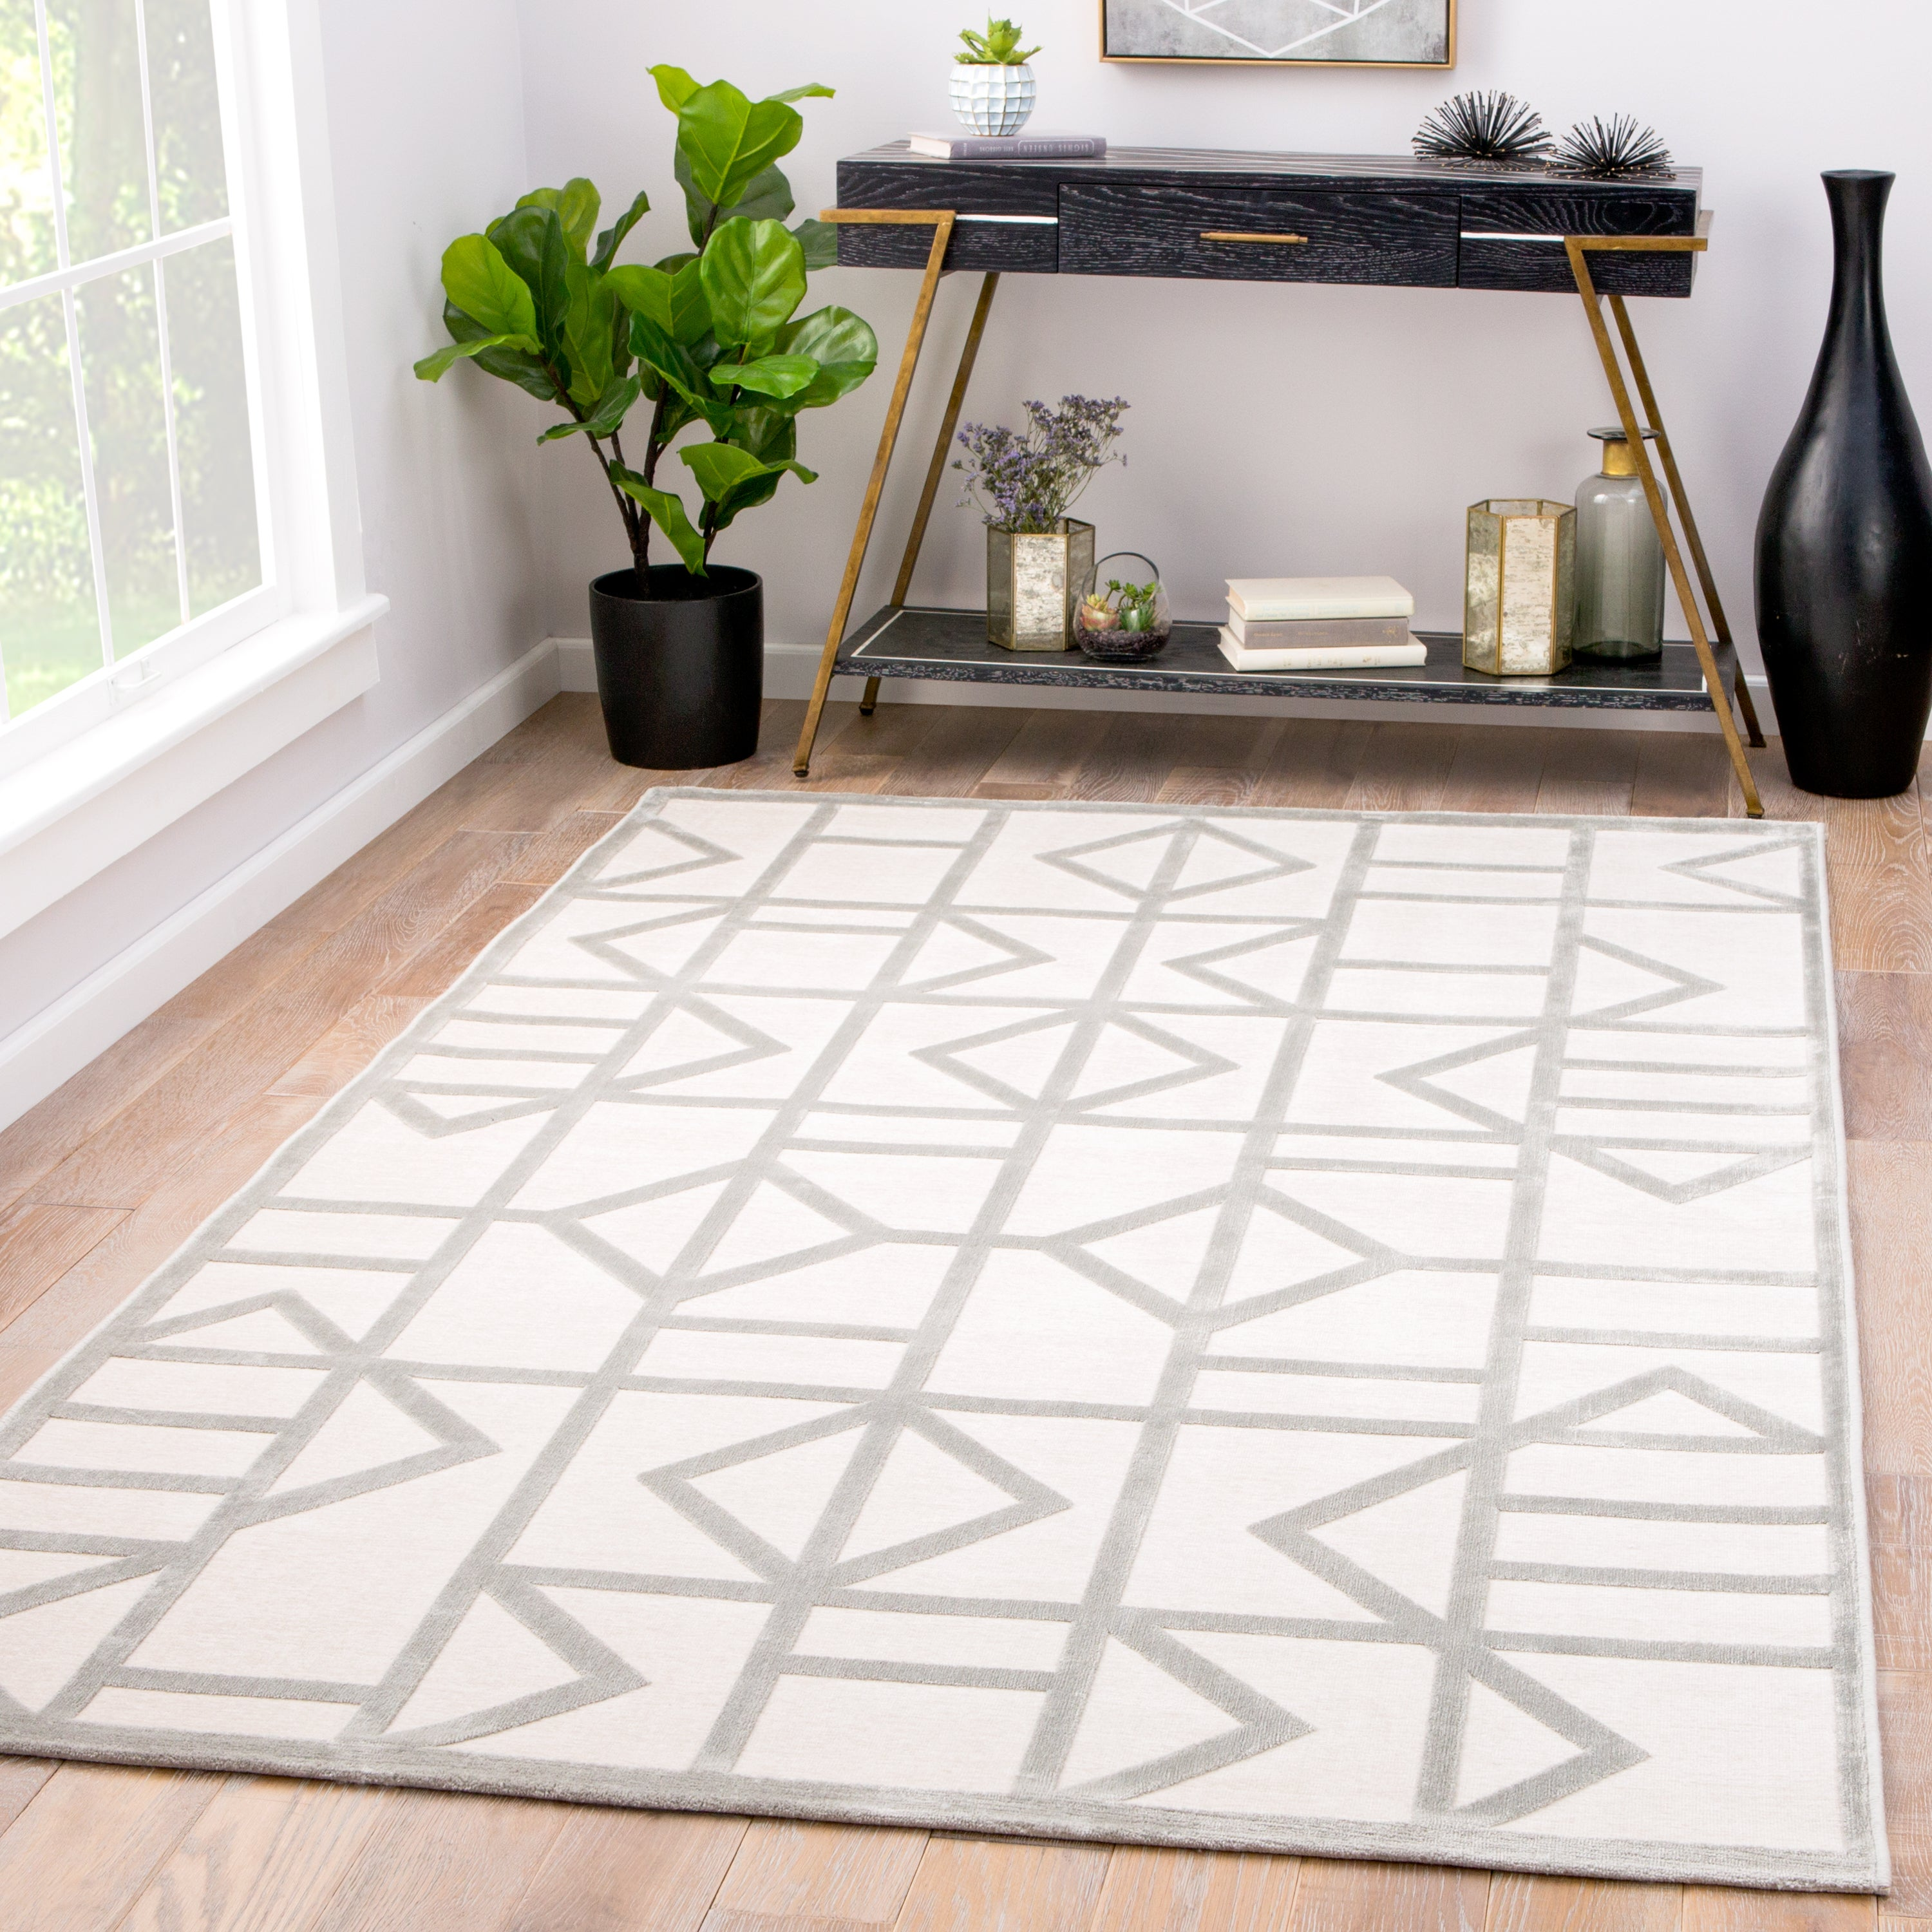 Rectangle White Geometric Machine Made Synthetics Modern recommended for Bedroom, Bathroom, Dining Room, Office, Hallway, Living Room